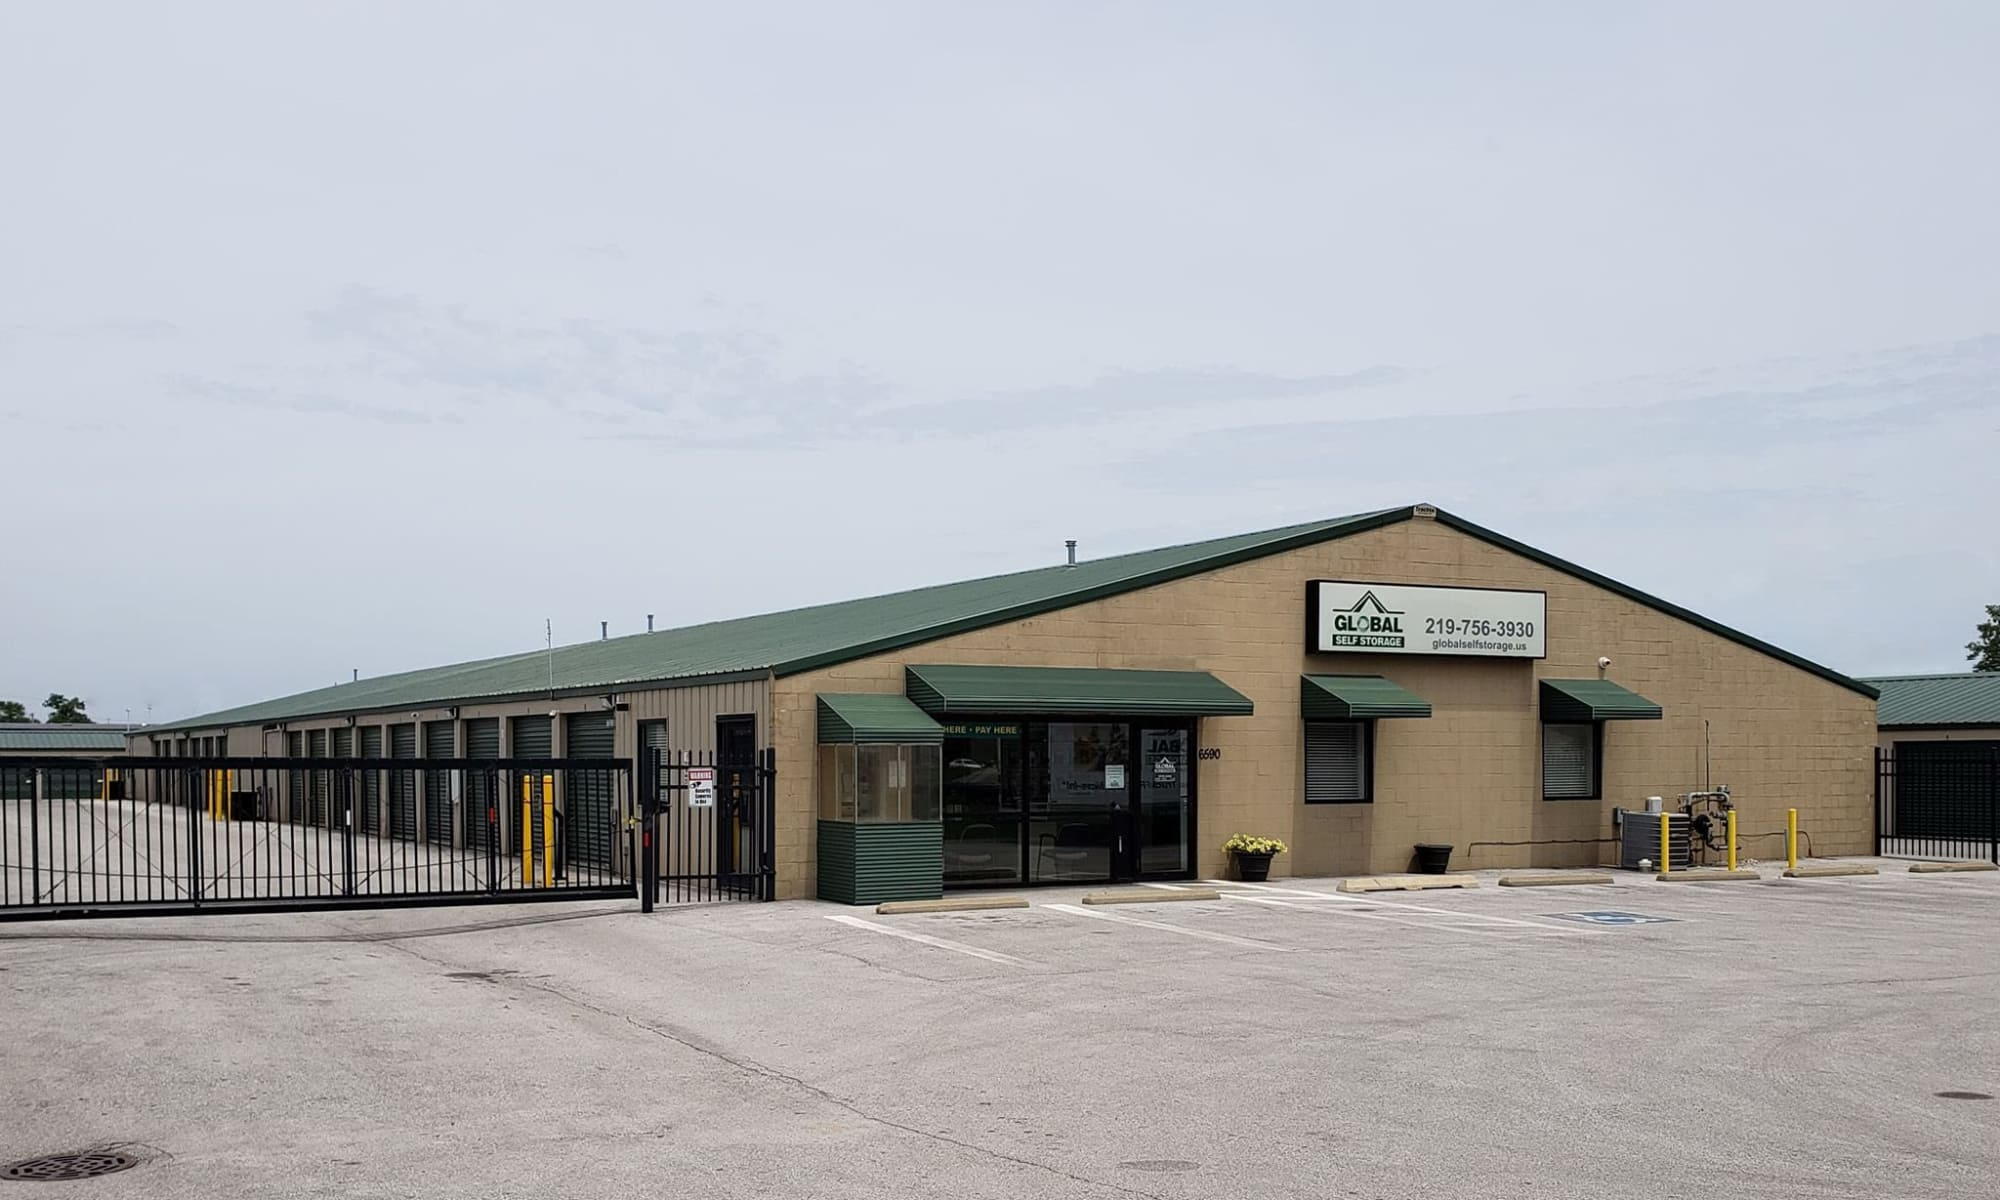 Self Storage available at Global Self Storage in Merrillville, IN